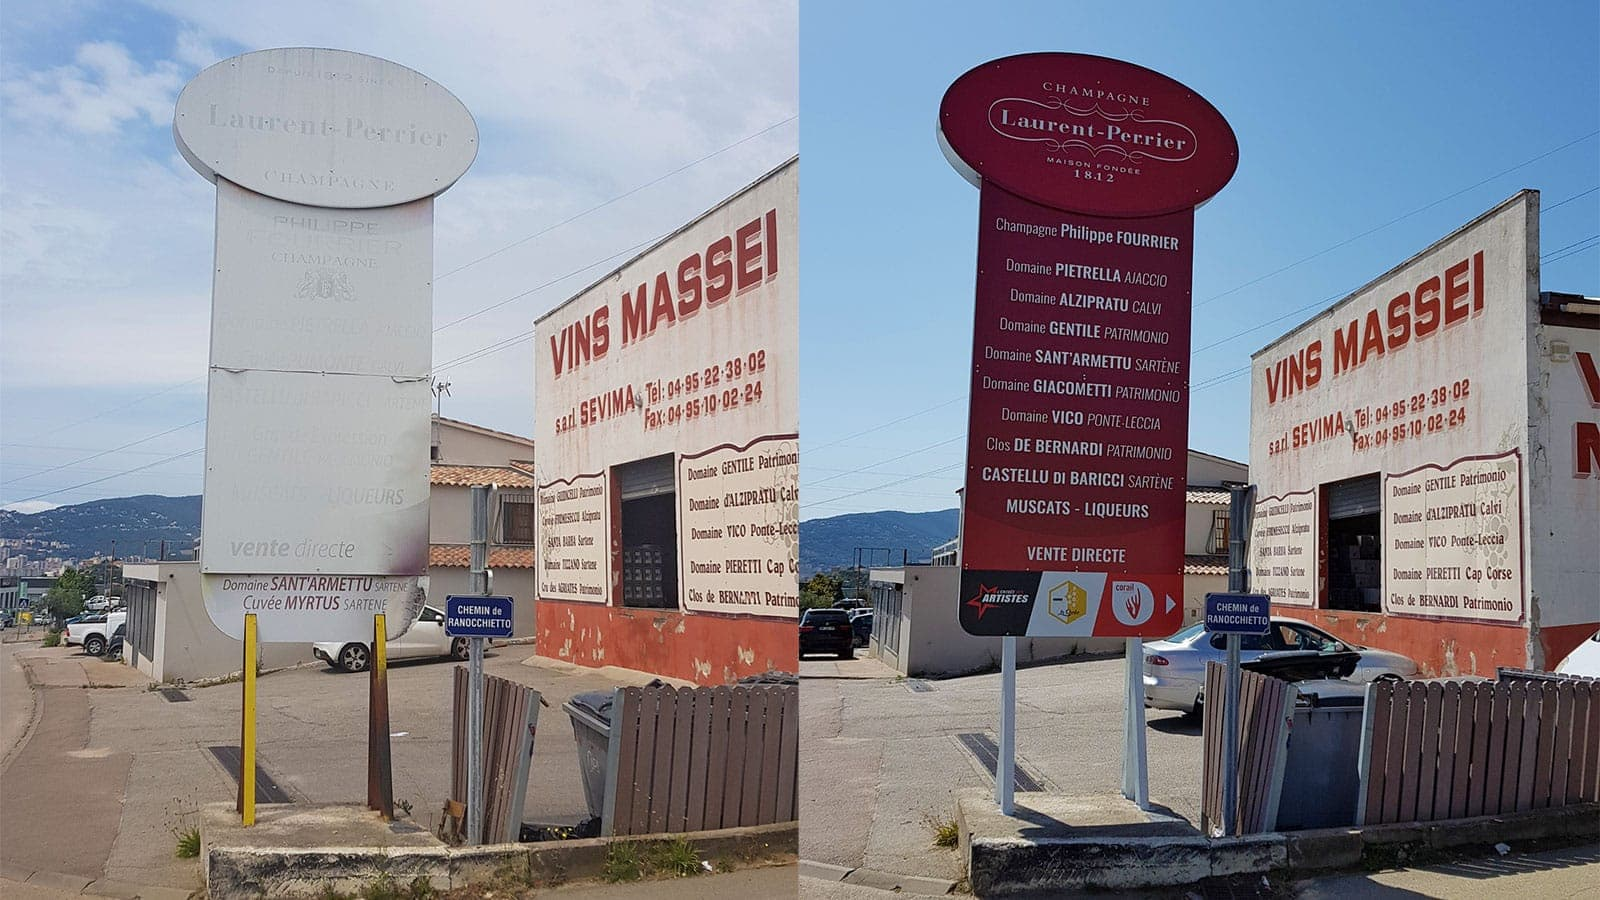 A new sign for Massei wines retail